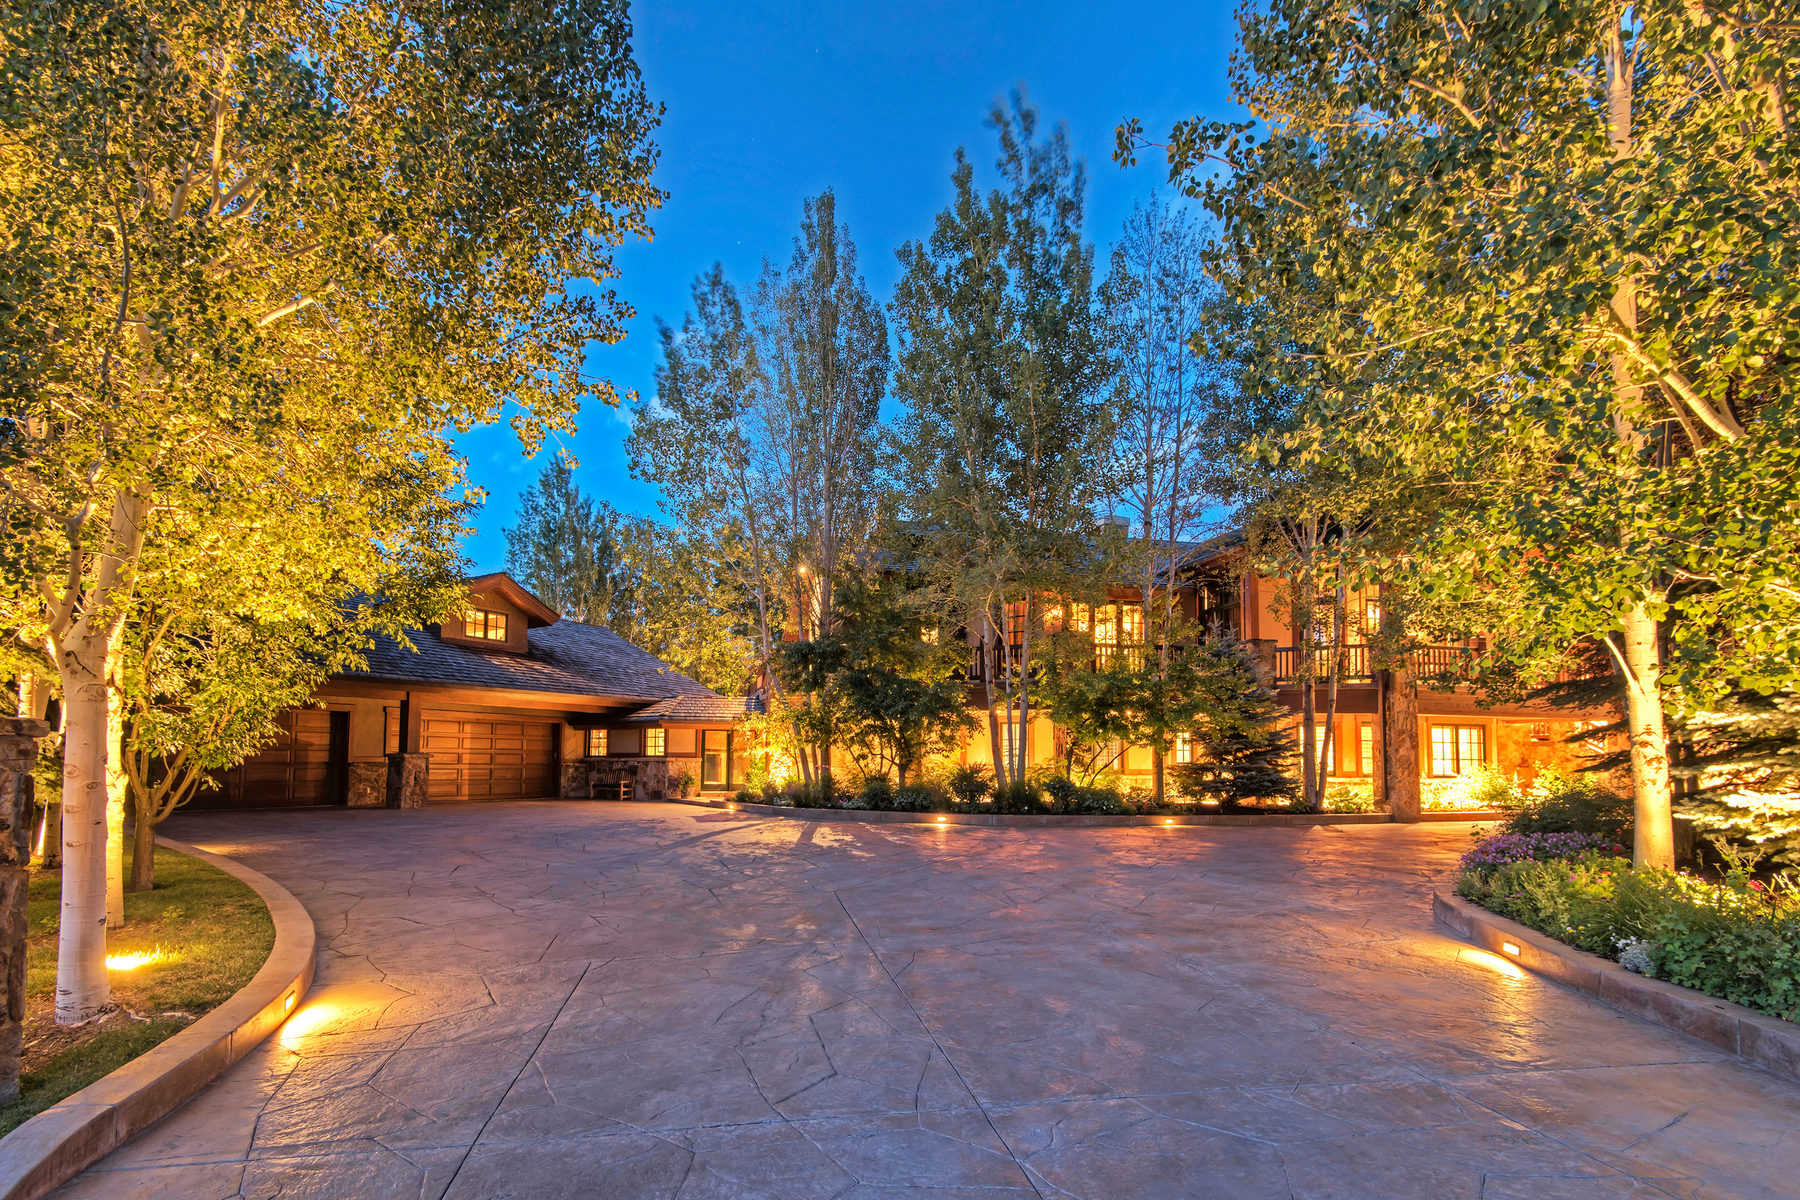 Casa Unifamiliar por un Venta en Stunning Park Meadows Estate on over 2.5 Acres 2300 Lucky John Dr Park City, Utah, 84060 Estados Unidos